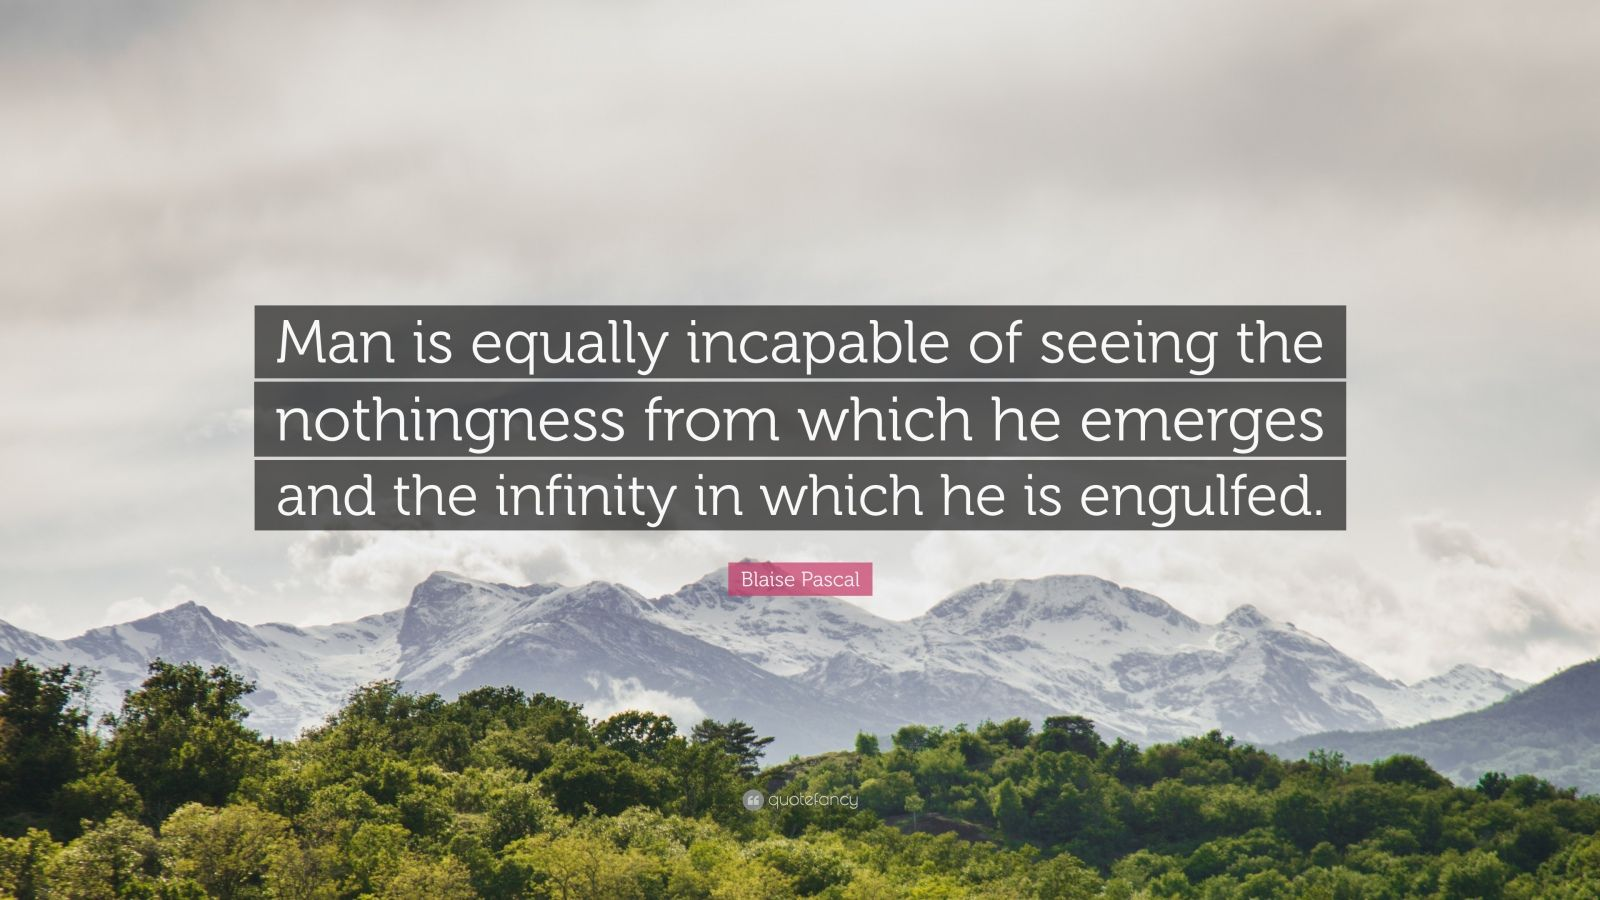 """Blaise Pascal Quote: """"Man is equally incapable of seeing the nothingness from which he emerges and the infinity in which he is engulfed."""""""